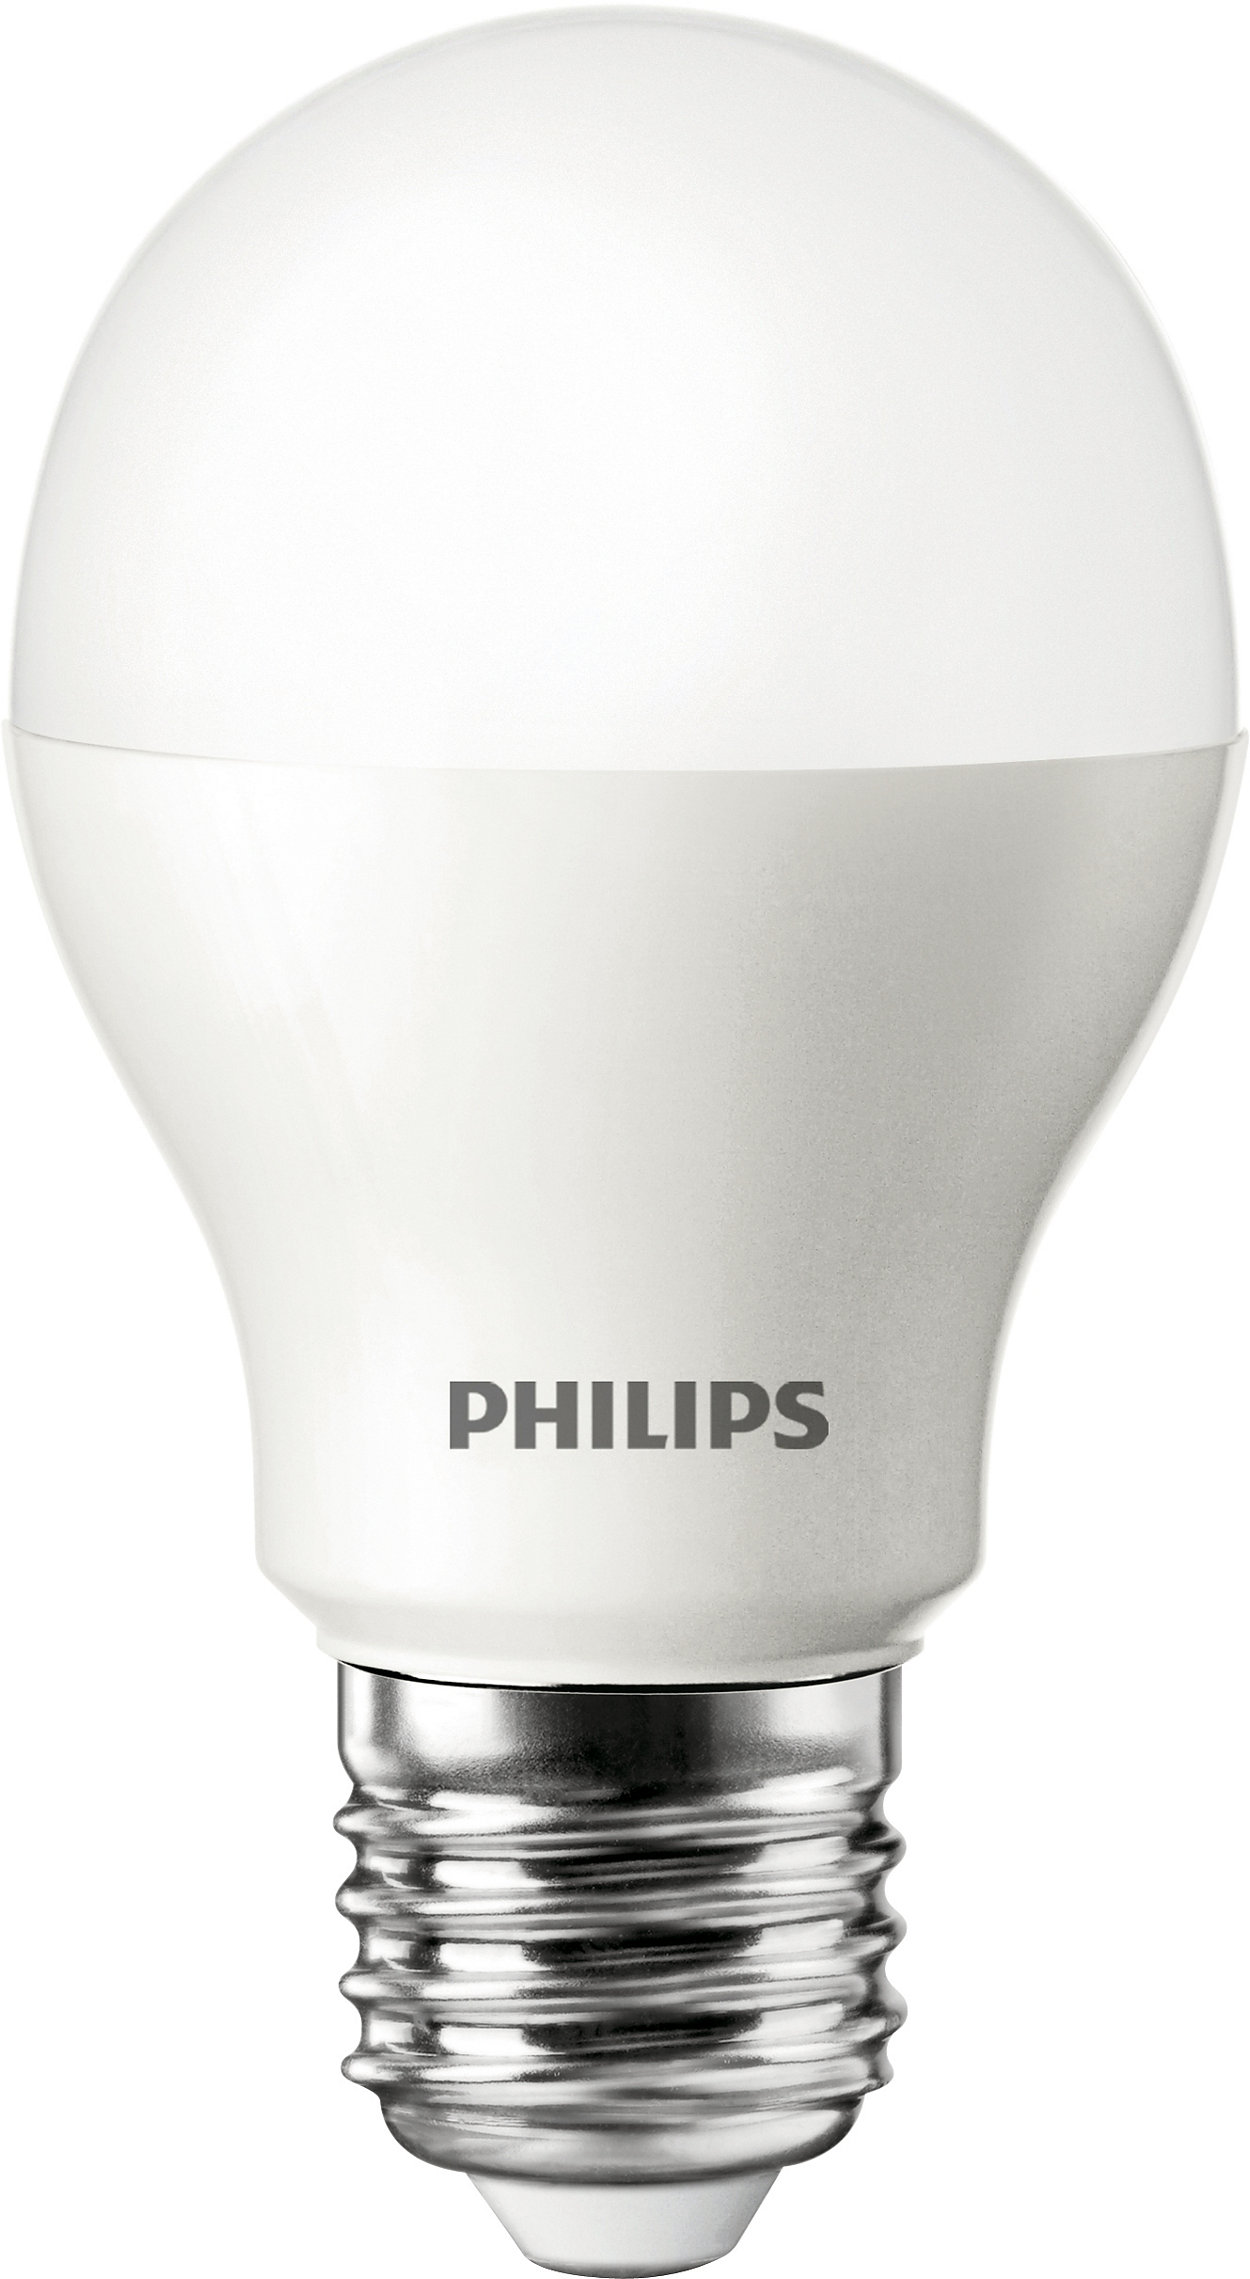 Corepro ledbulb 4 32w e27 830 corepro ledbulbs philips lighting the affordable ledbulb solution led corepro ledbulb 4 32w e27 830 parisarafo Gallery